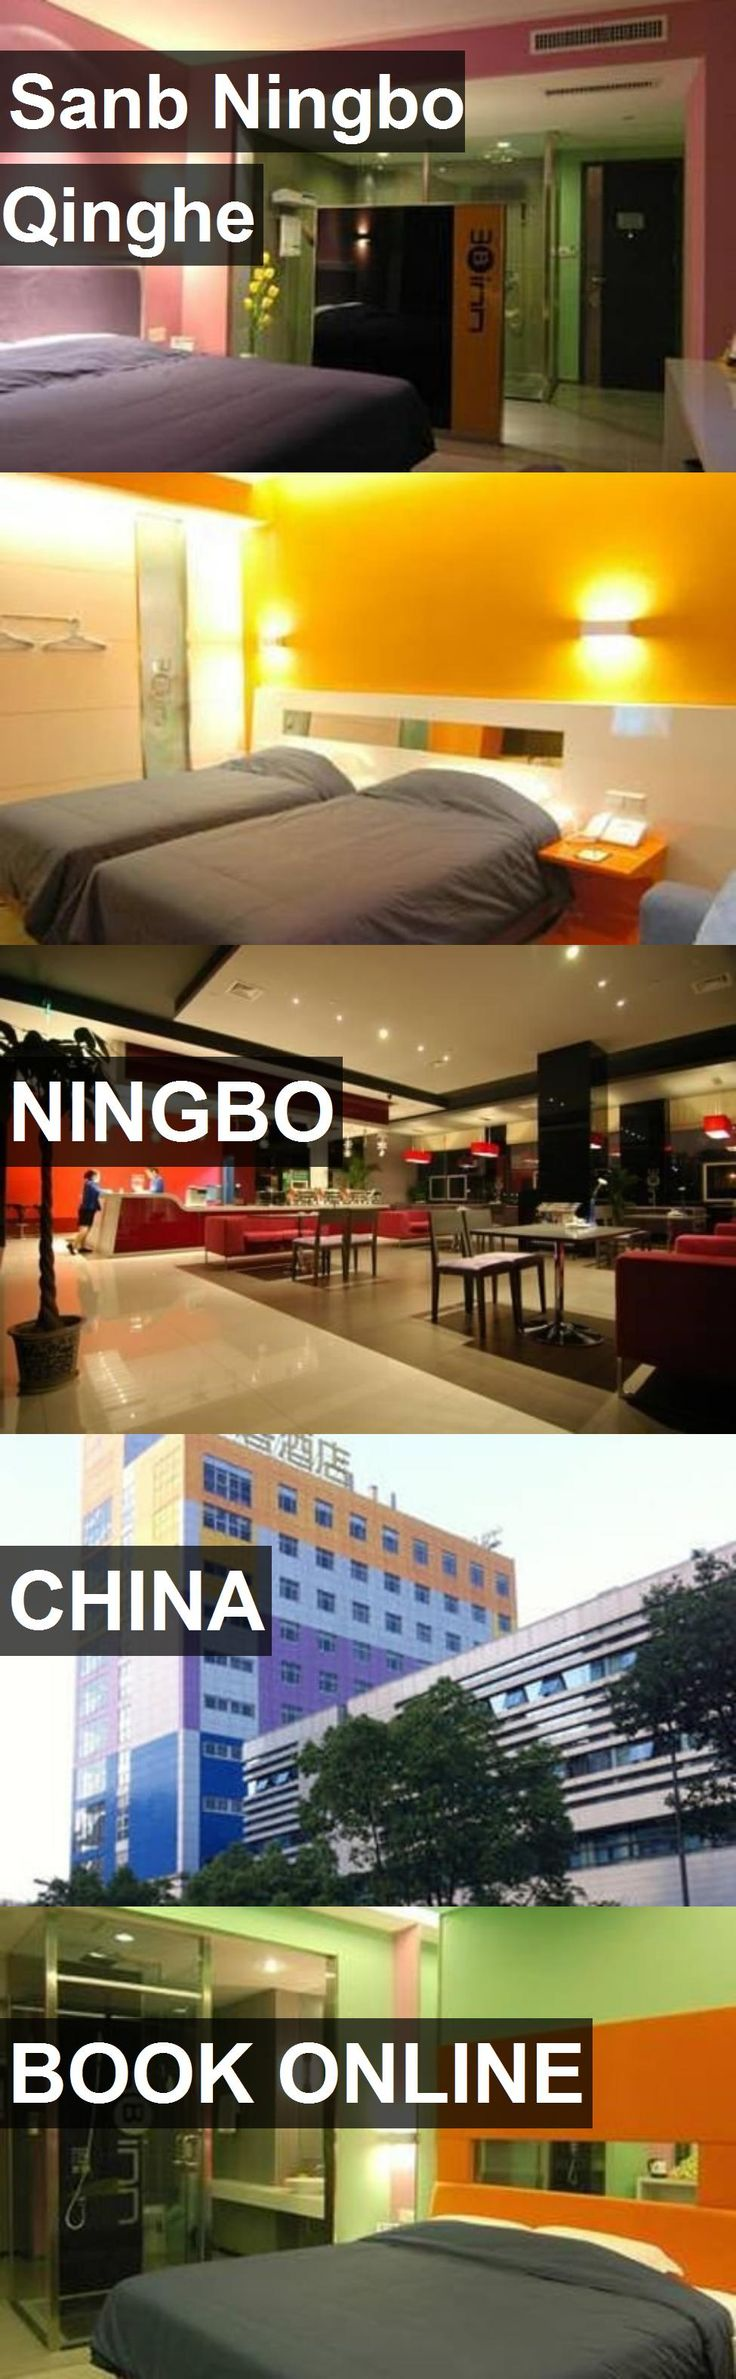 Hotel Sanb Ningbo Qinghe in Ningbo, China. For more information, photos, reviews and best prices please follow the link. #China #Ningbo #travel #vacation #hotel